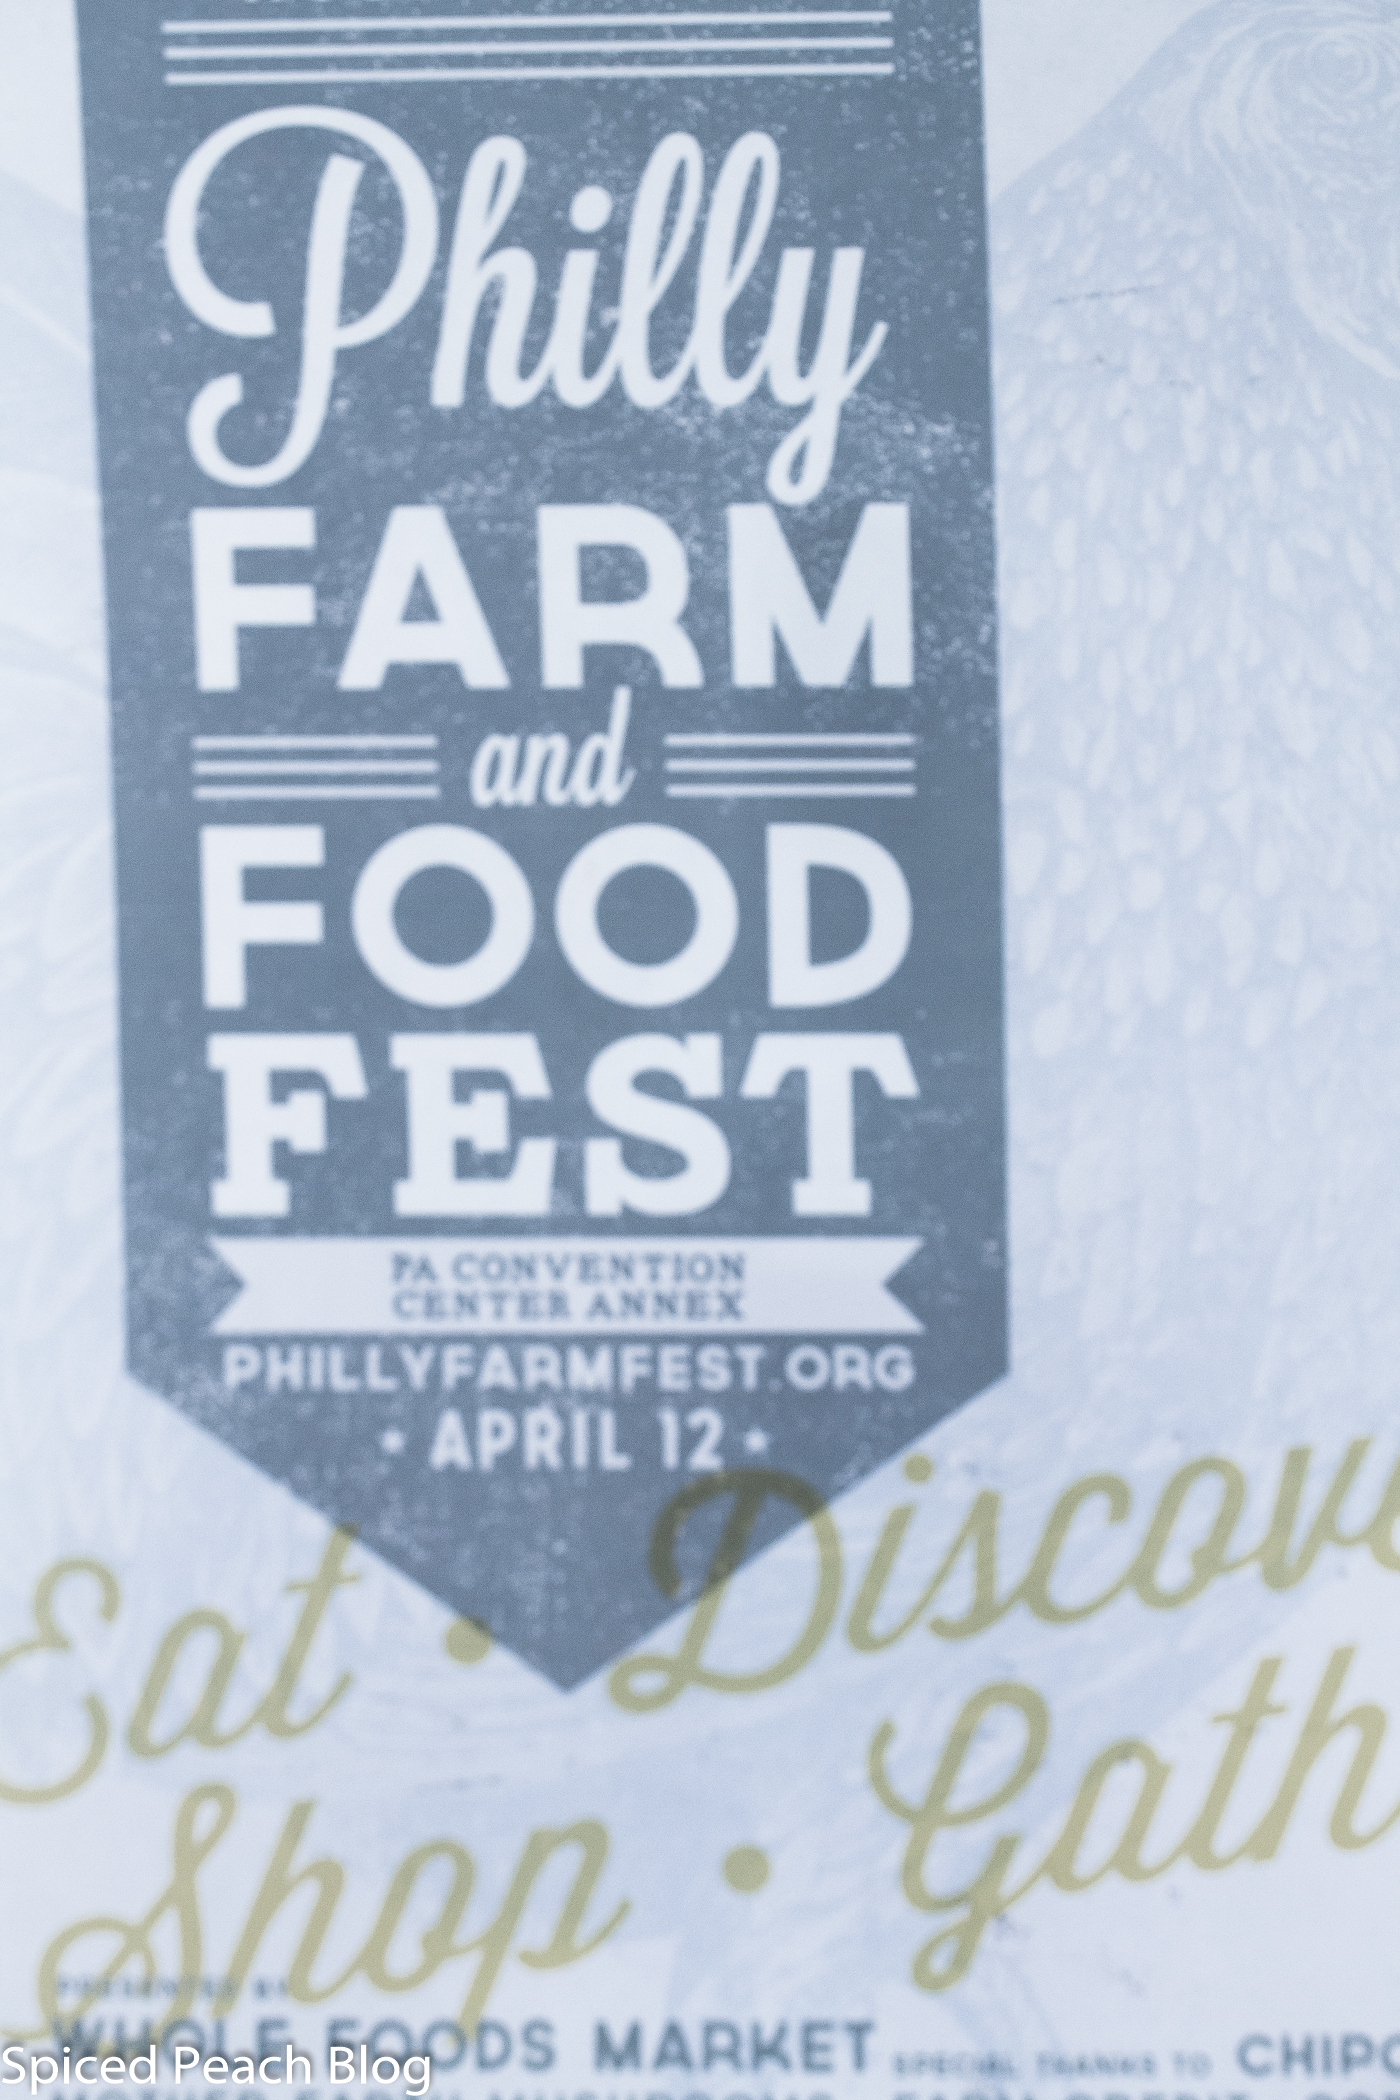 2015 Philly Farm and Food Fest, the spirit of the entrepreneur